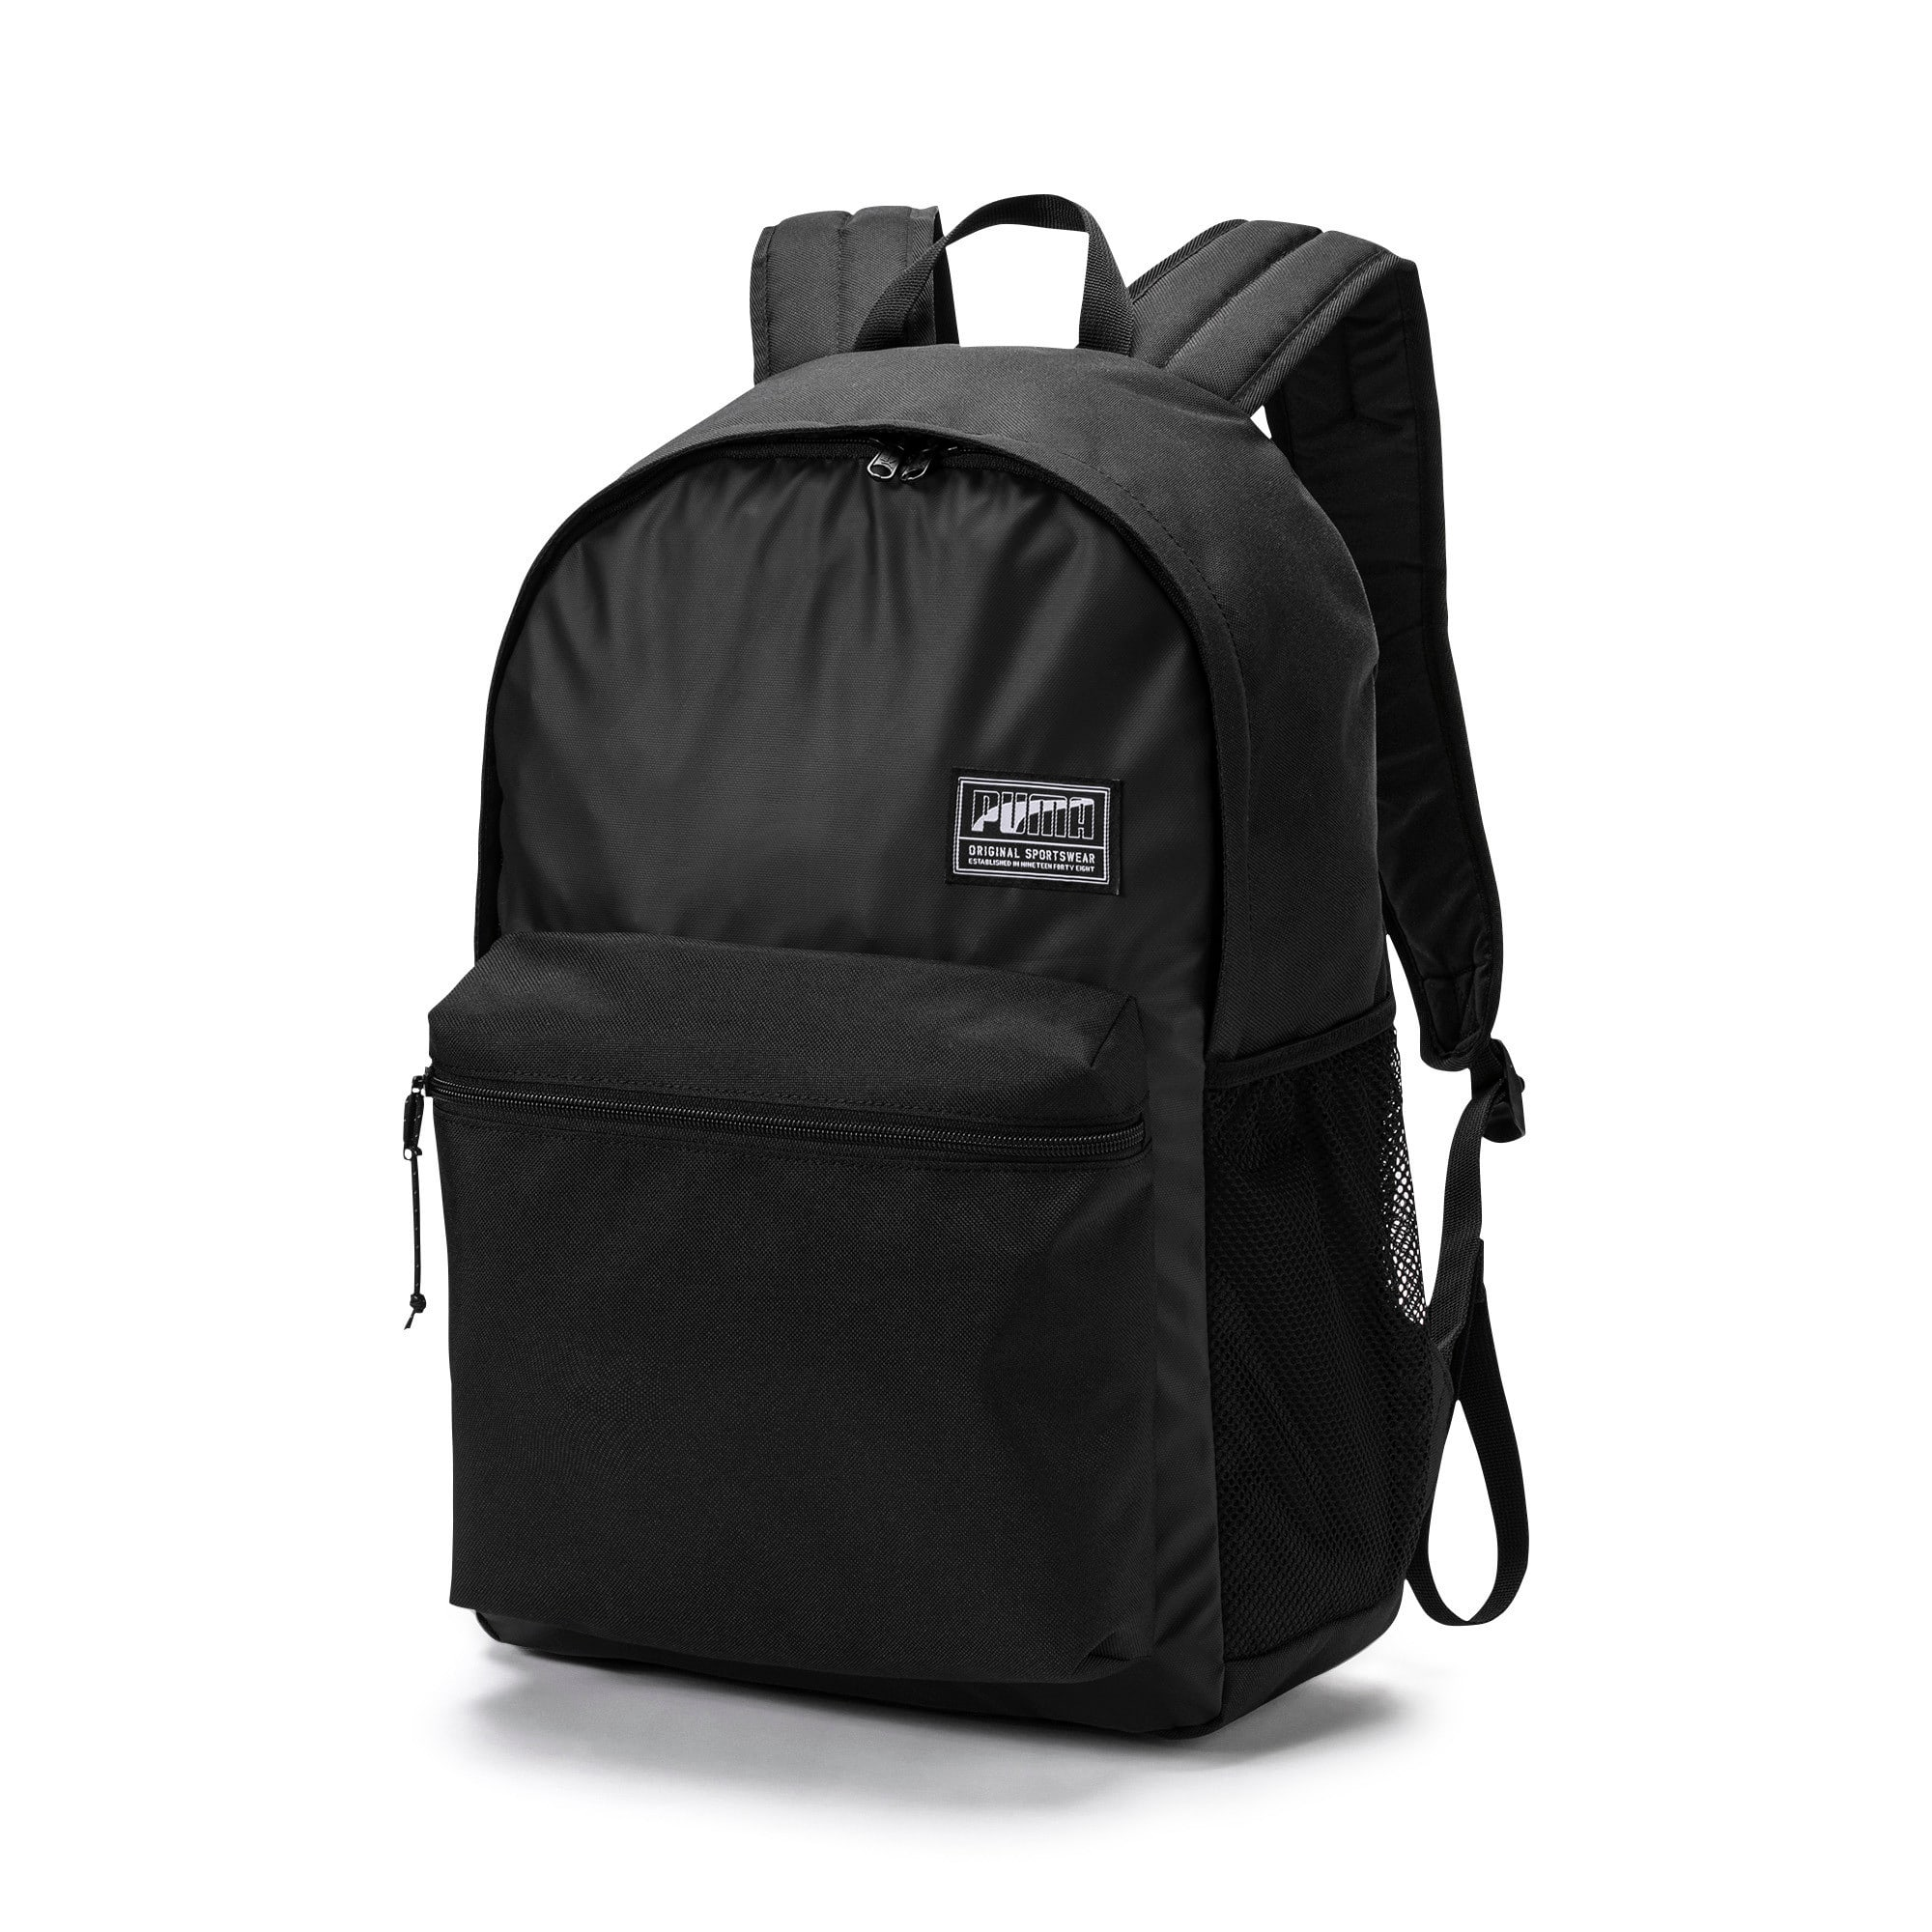 Thumbnail 1 of Academy Rucksack, Puma Black, medium